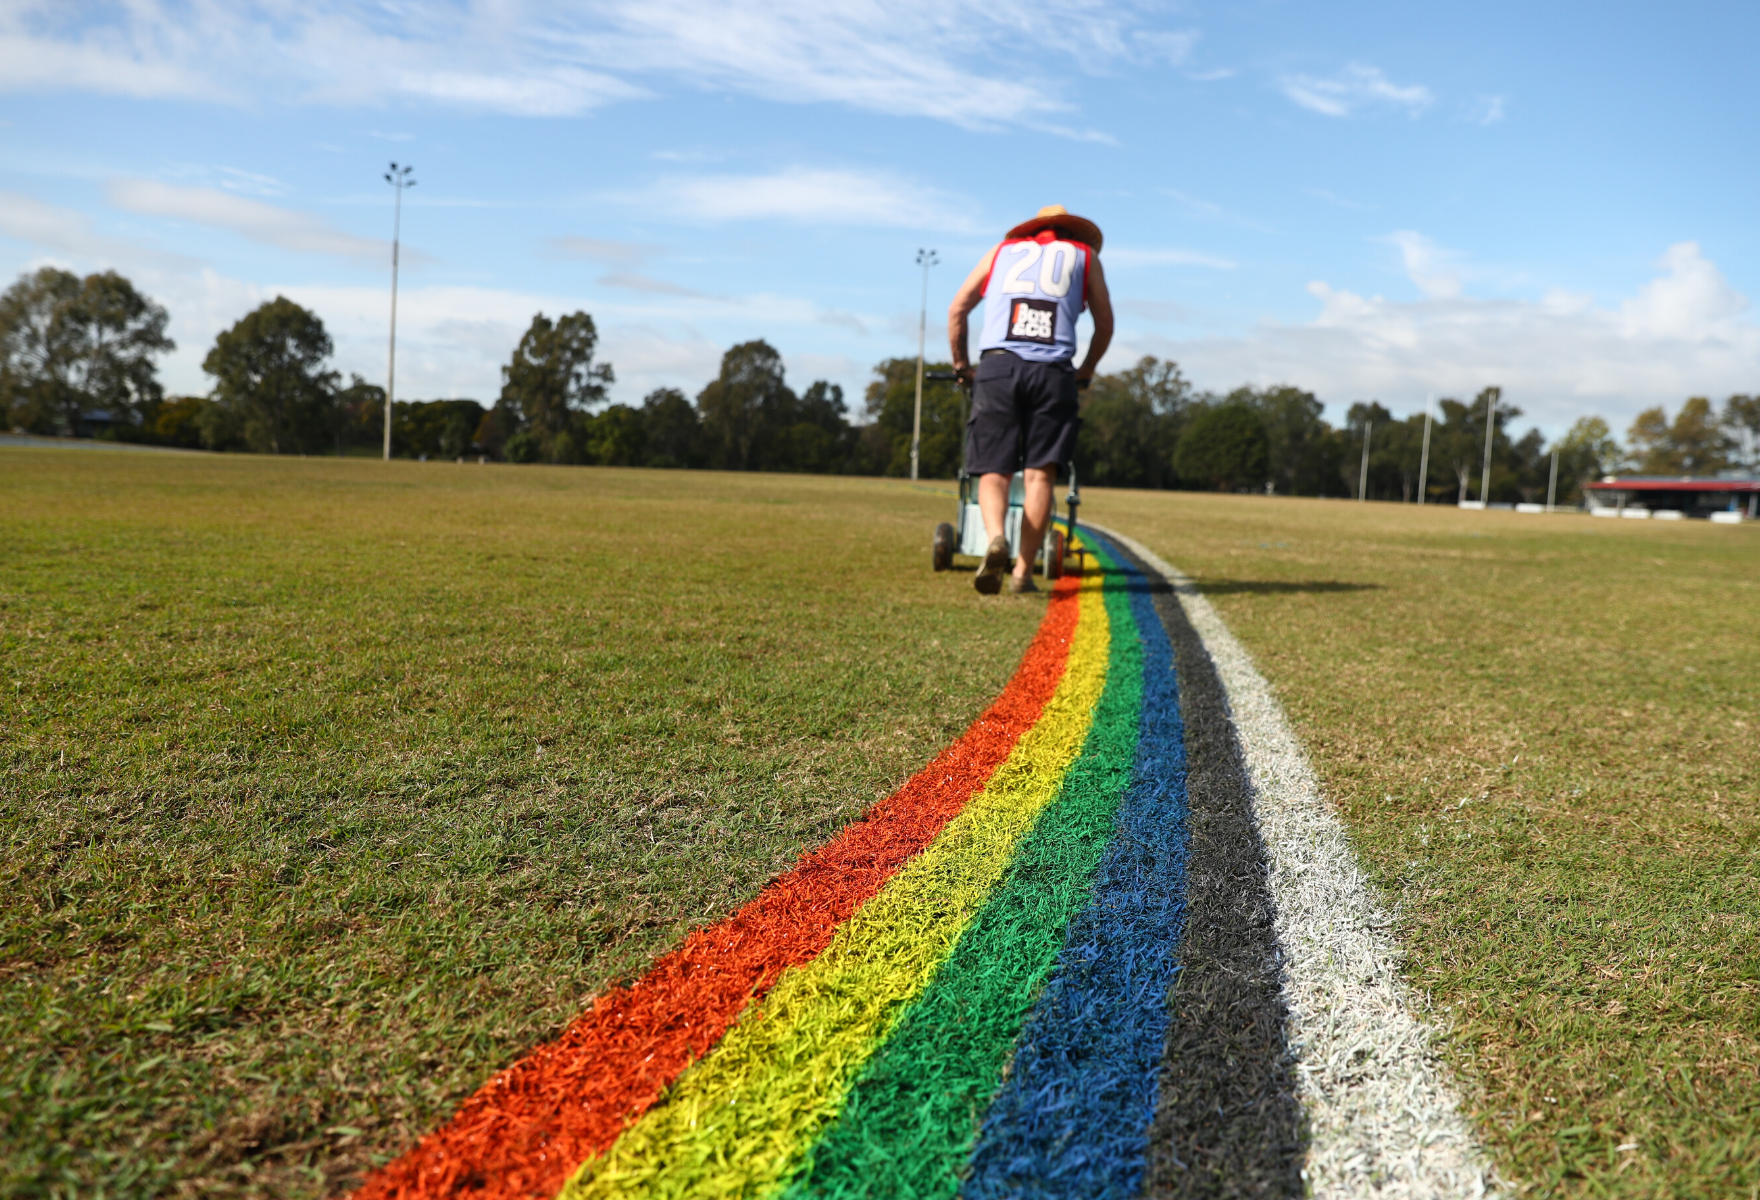 Football field being marked with rainbow